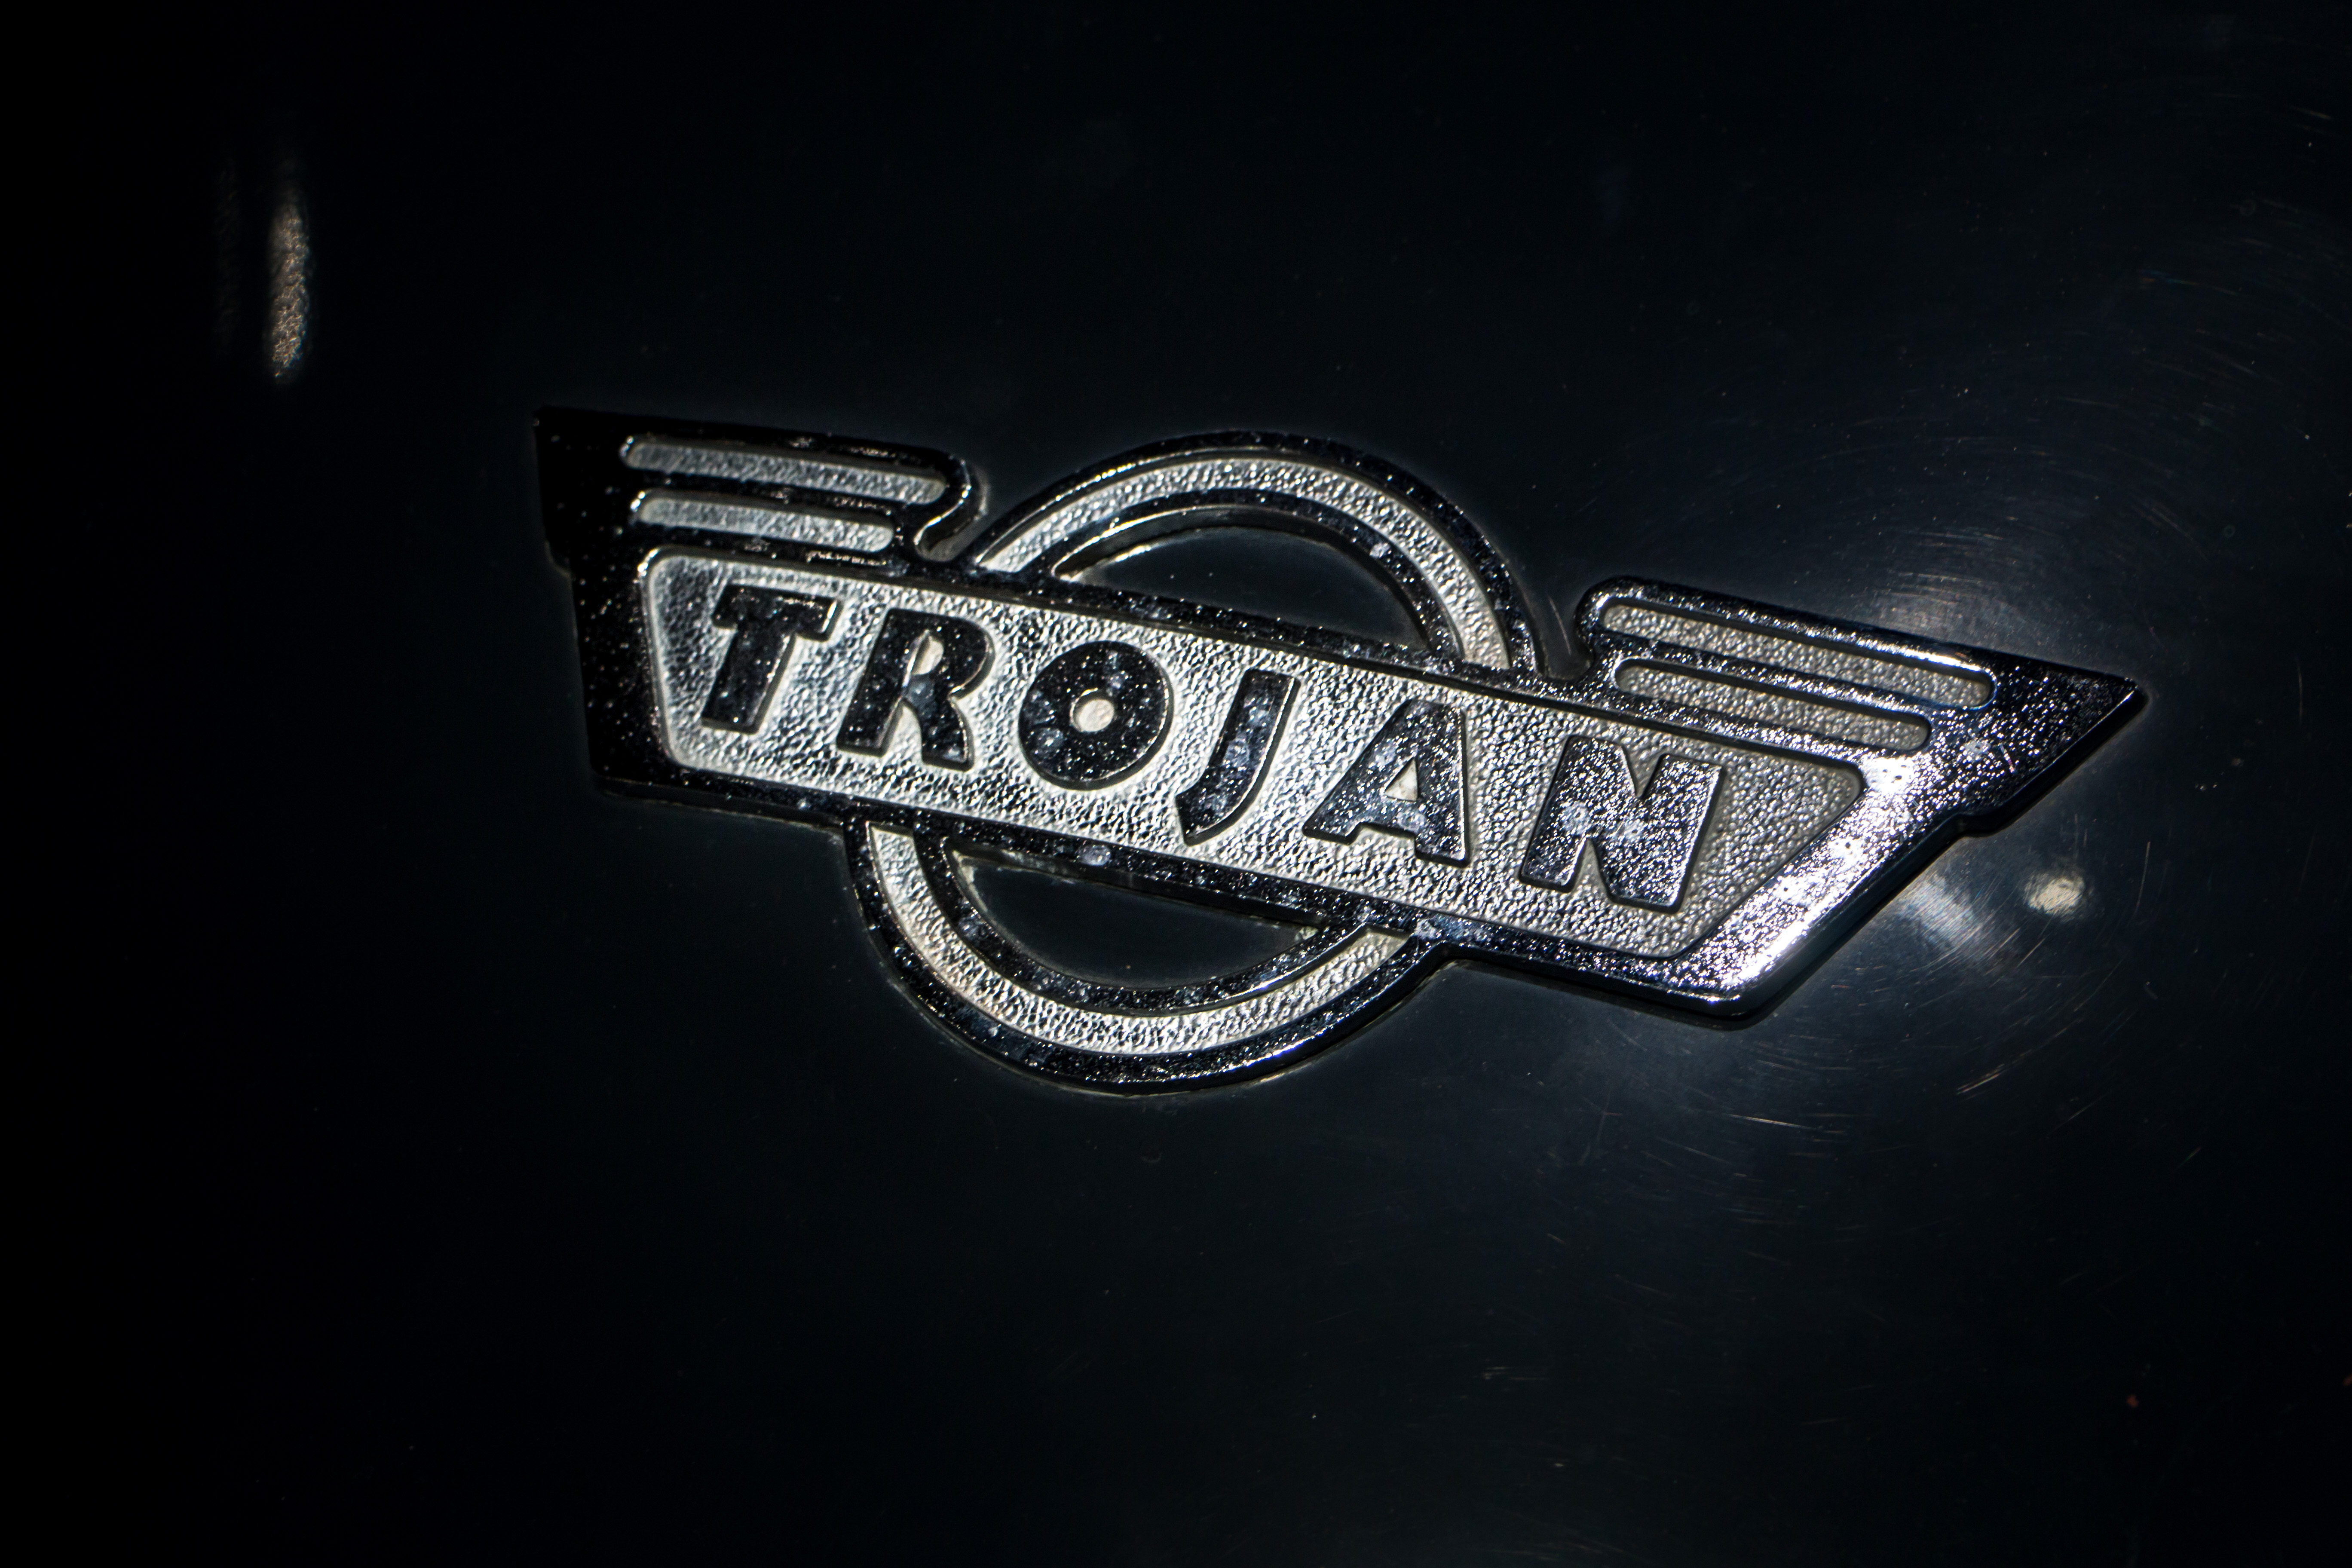 Trojan, Auto, Beautiful, Brand, Car, HQ Photo